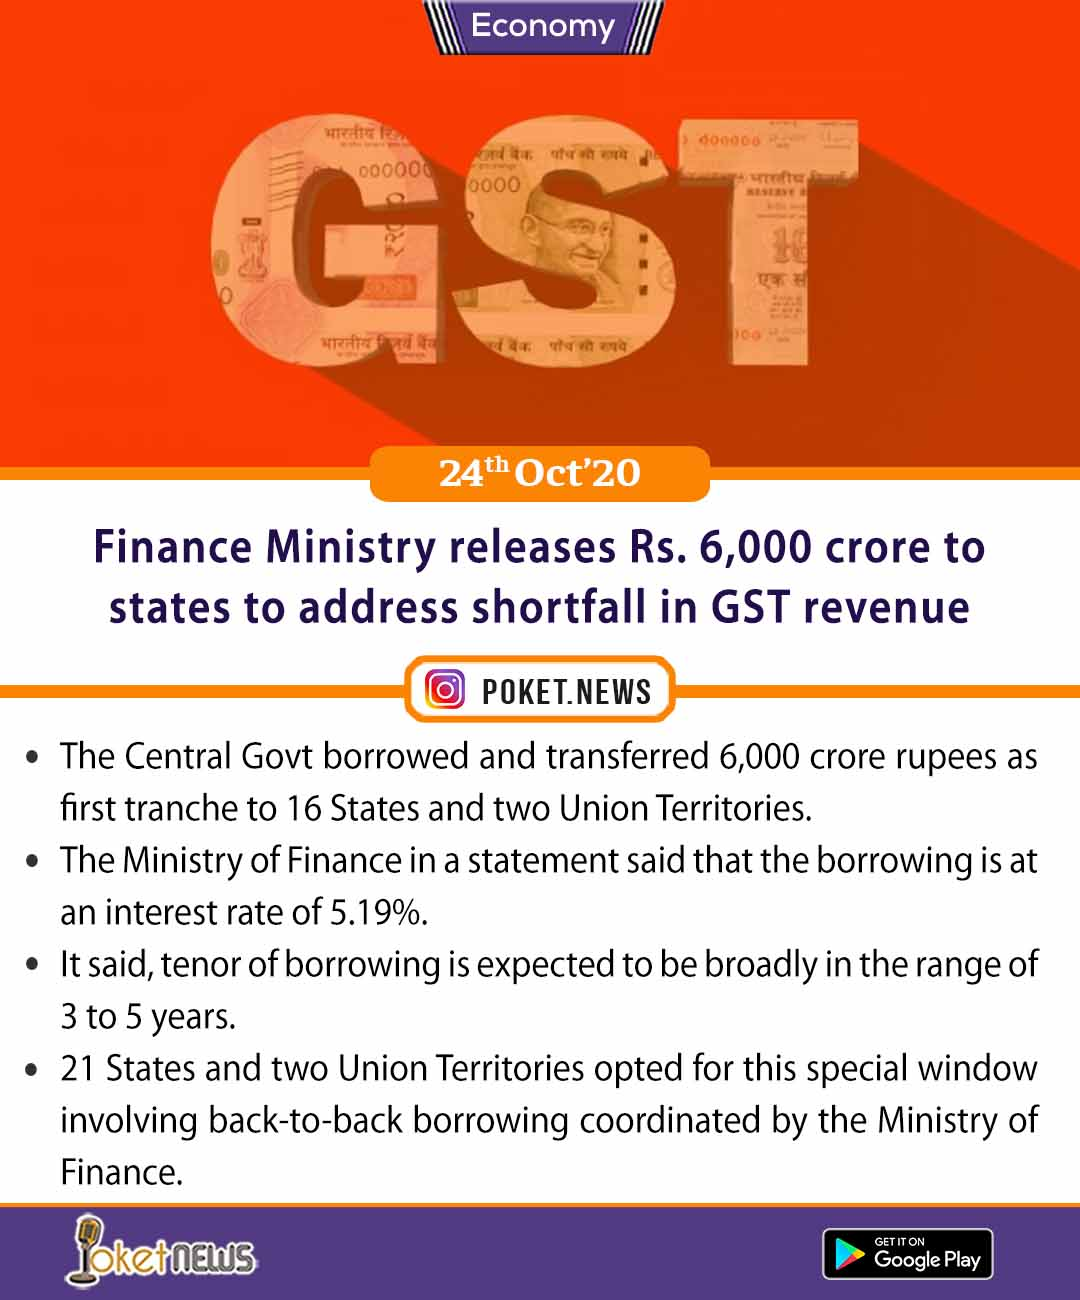 Finance Ministry releases Rs. 6,000 crore to states to address shortfall in GST revenue